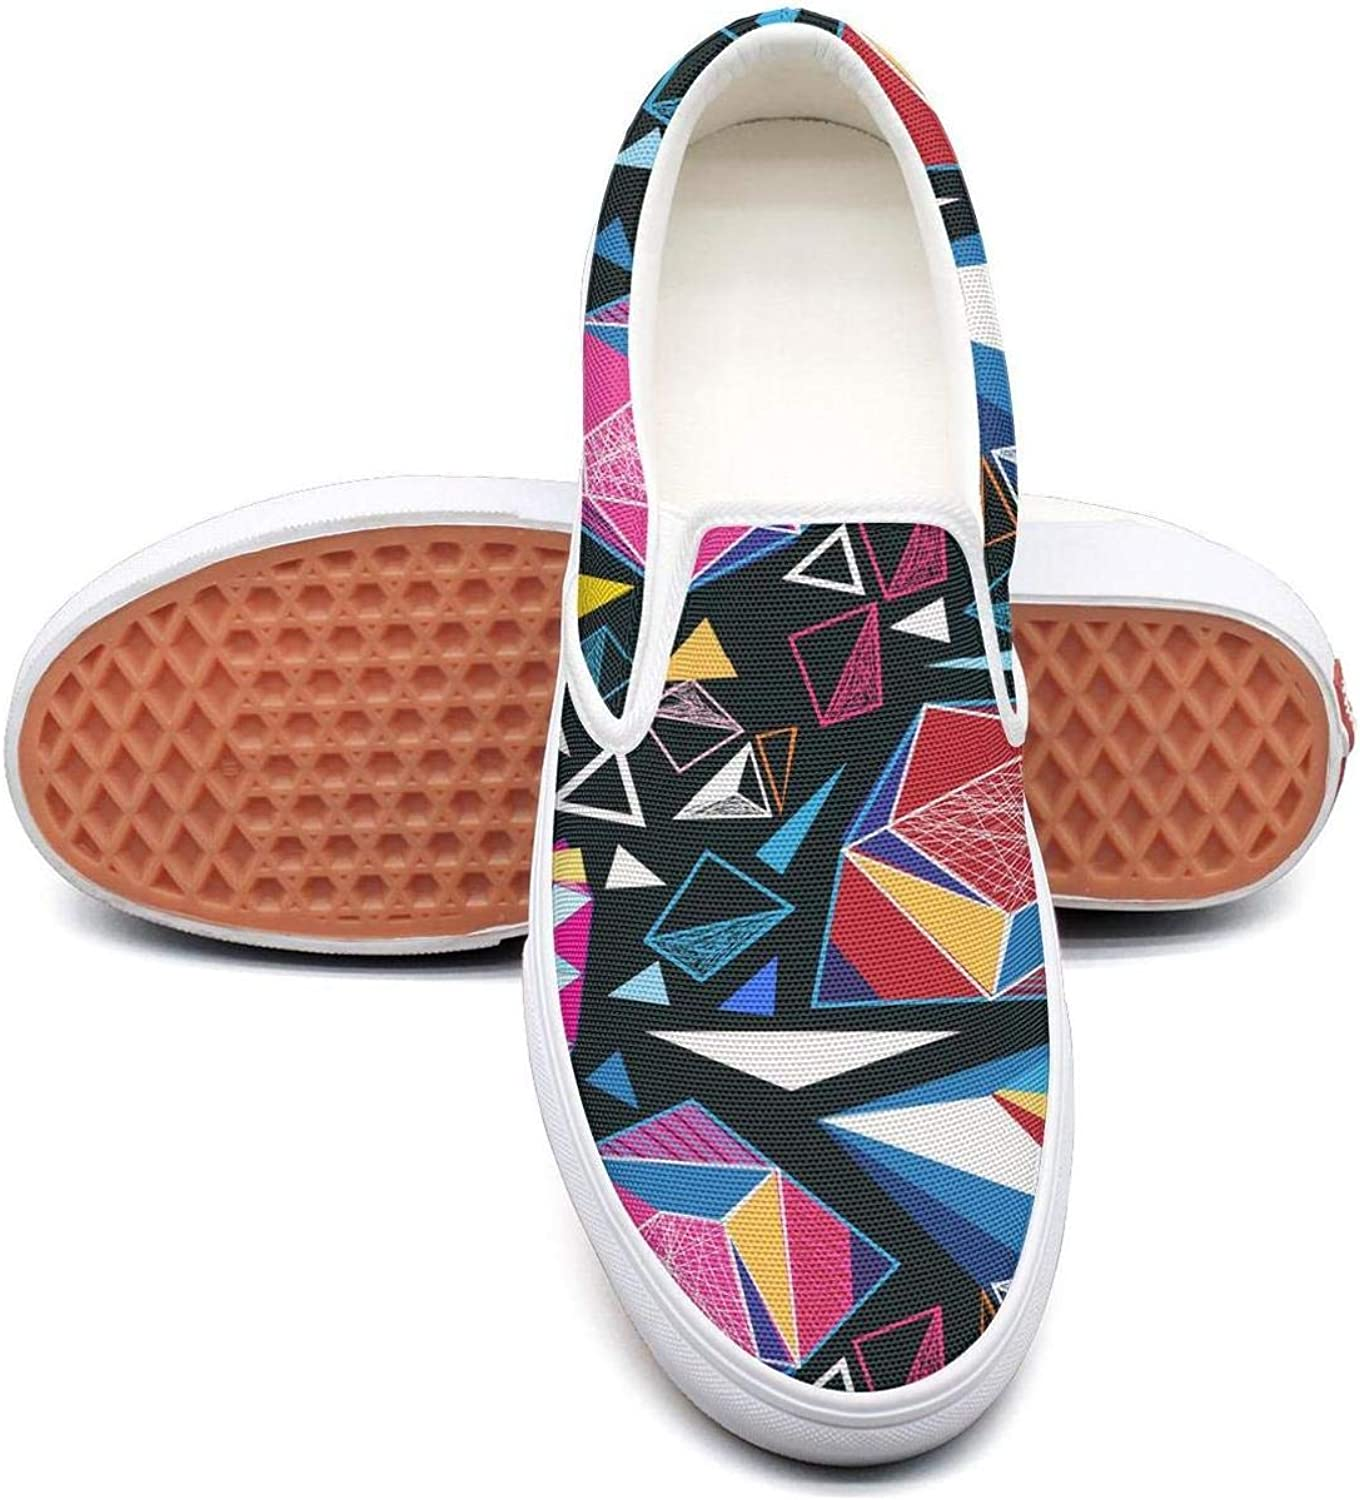 colorful Raw Diamond Slip On Rubber Sole Sneakers Canvas shoes for Women Lightweight